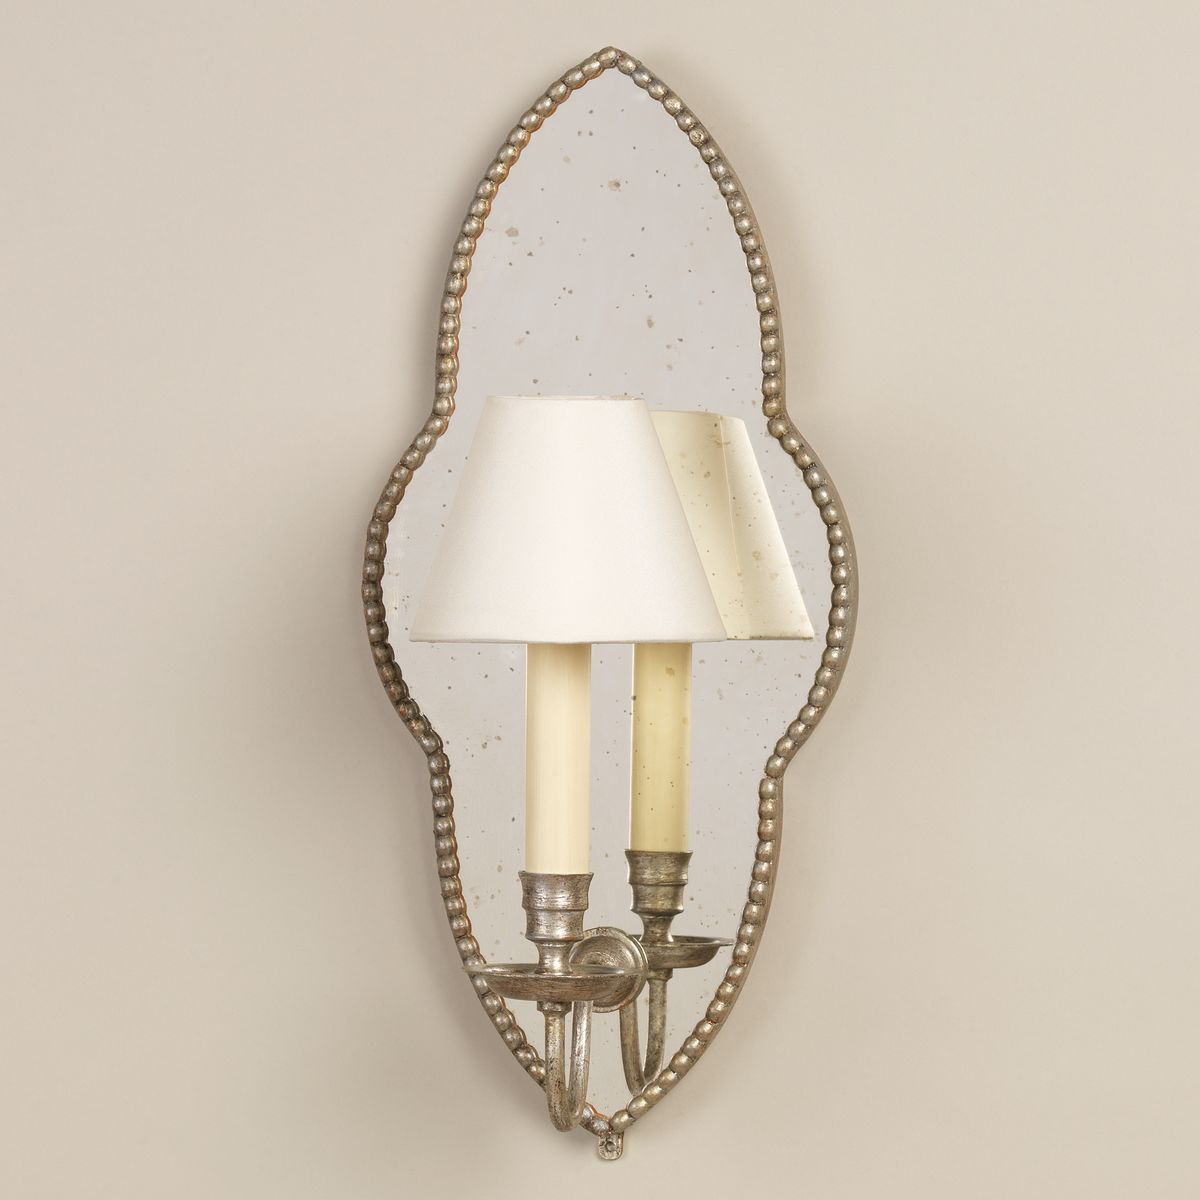 Cobham Mirror Wall Light Vaughan Designs Wall lights